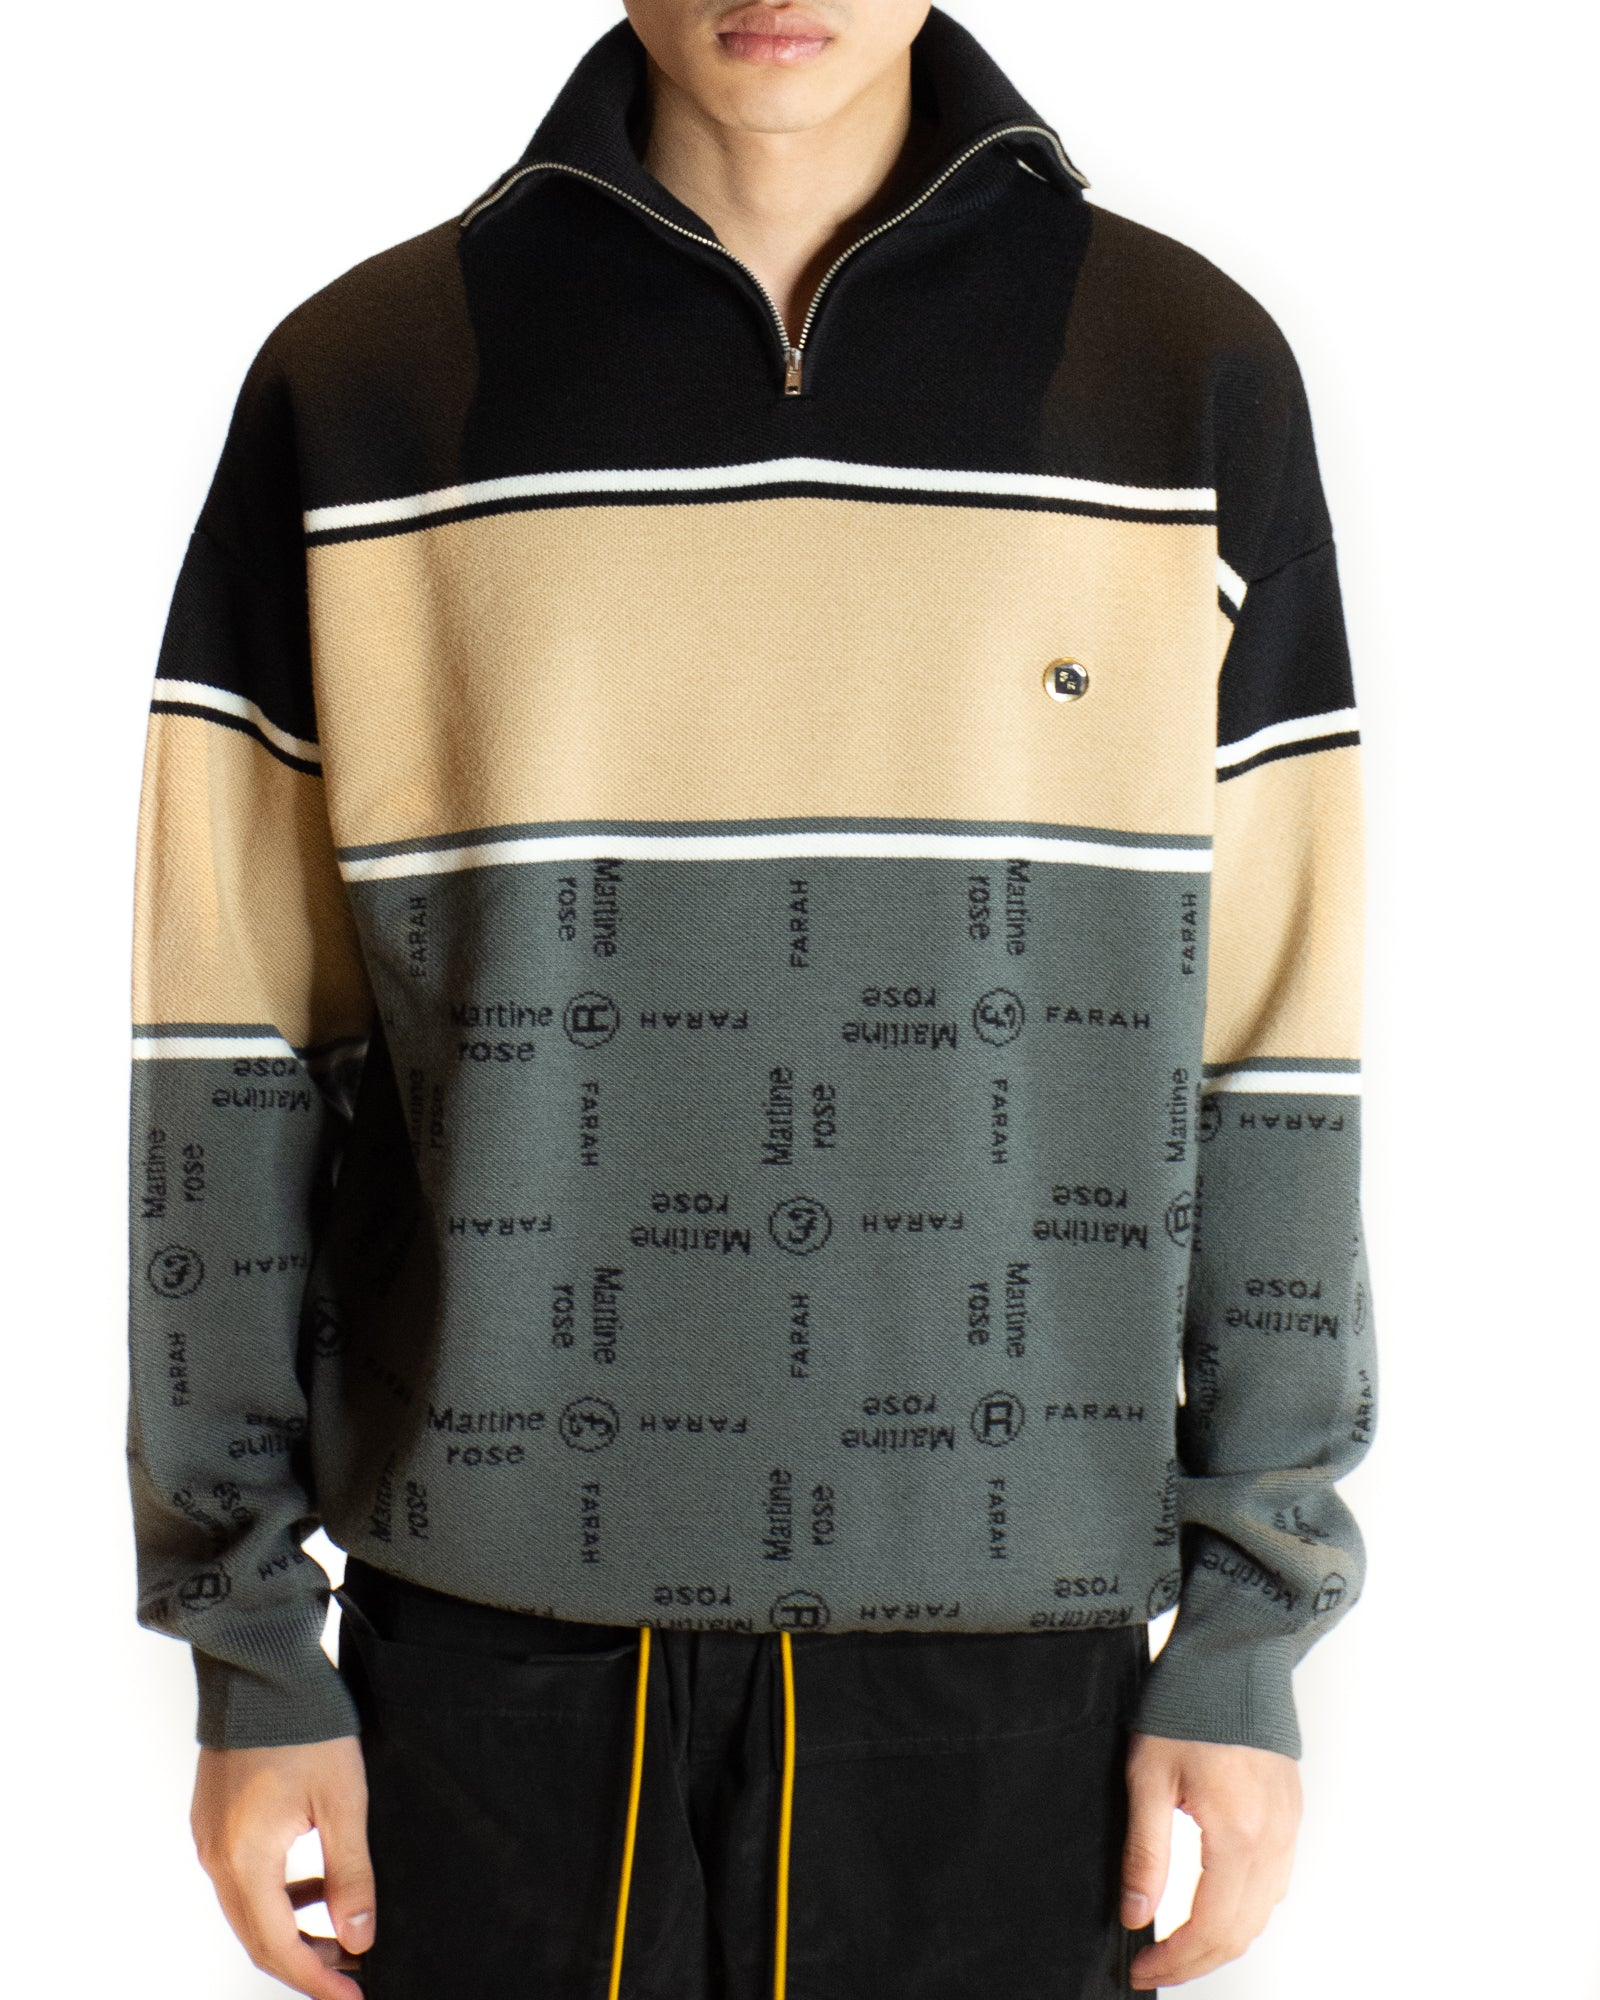 MARTINE ROSE x FARAH CUBIC KNIT ZIP POLO